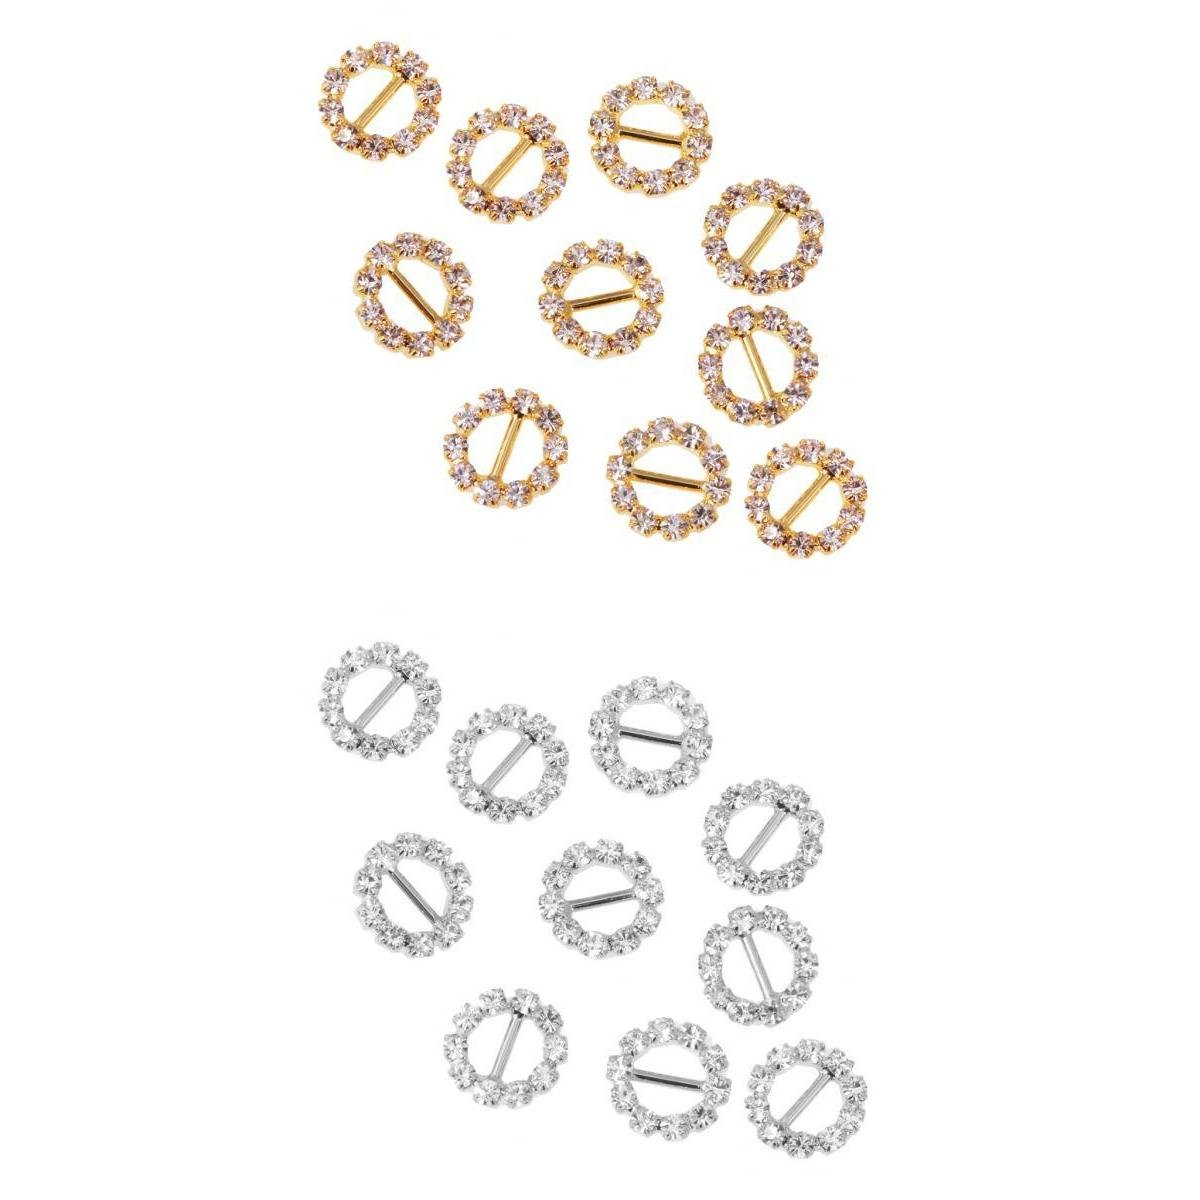 SM SunniMix 10 Pezzi Tondi Strass Wedding Nastri Fibbie Sliders 5mm Oro+10 Pezzi Tondi Strass Wedding Nastri Fibbie Sliders 5mm Argento